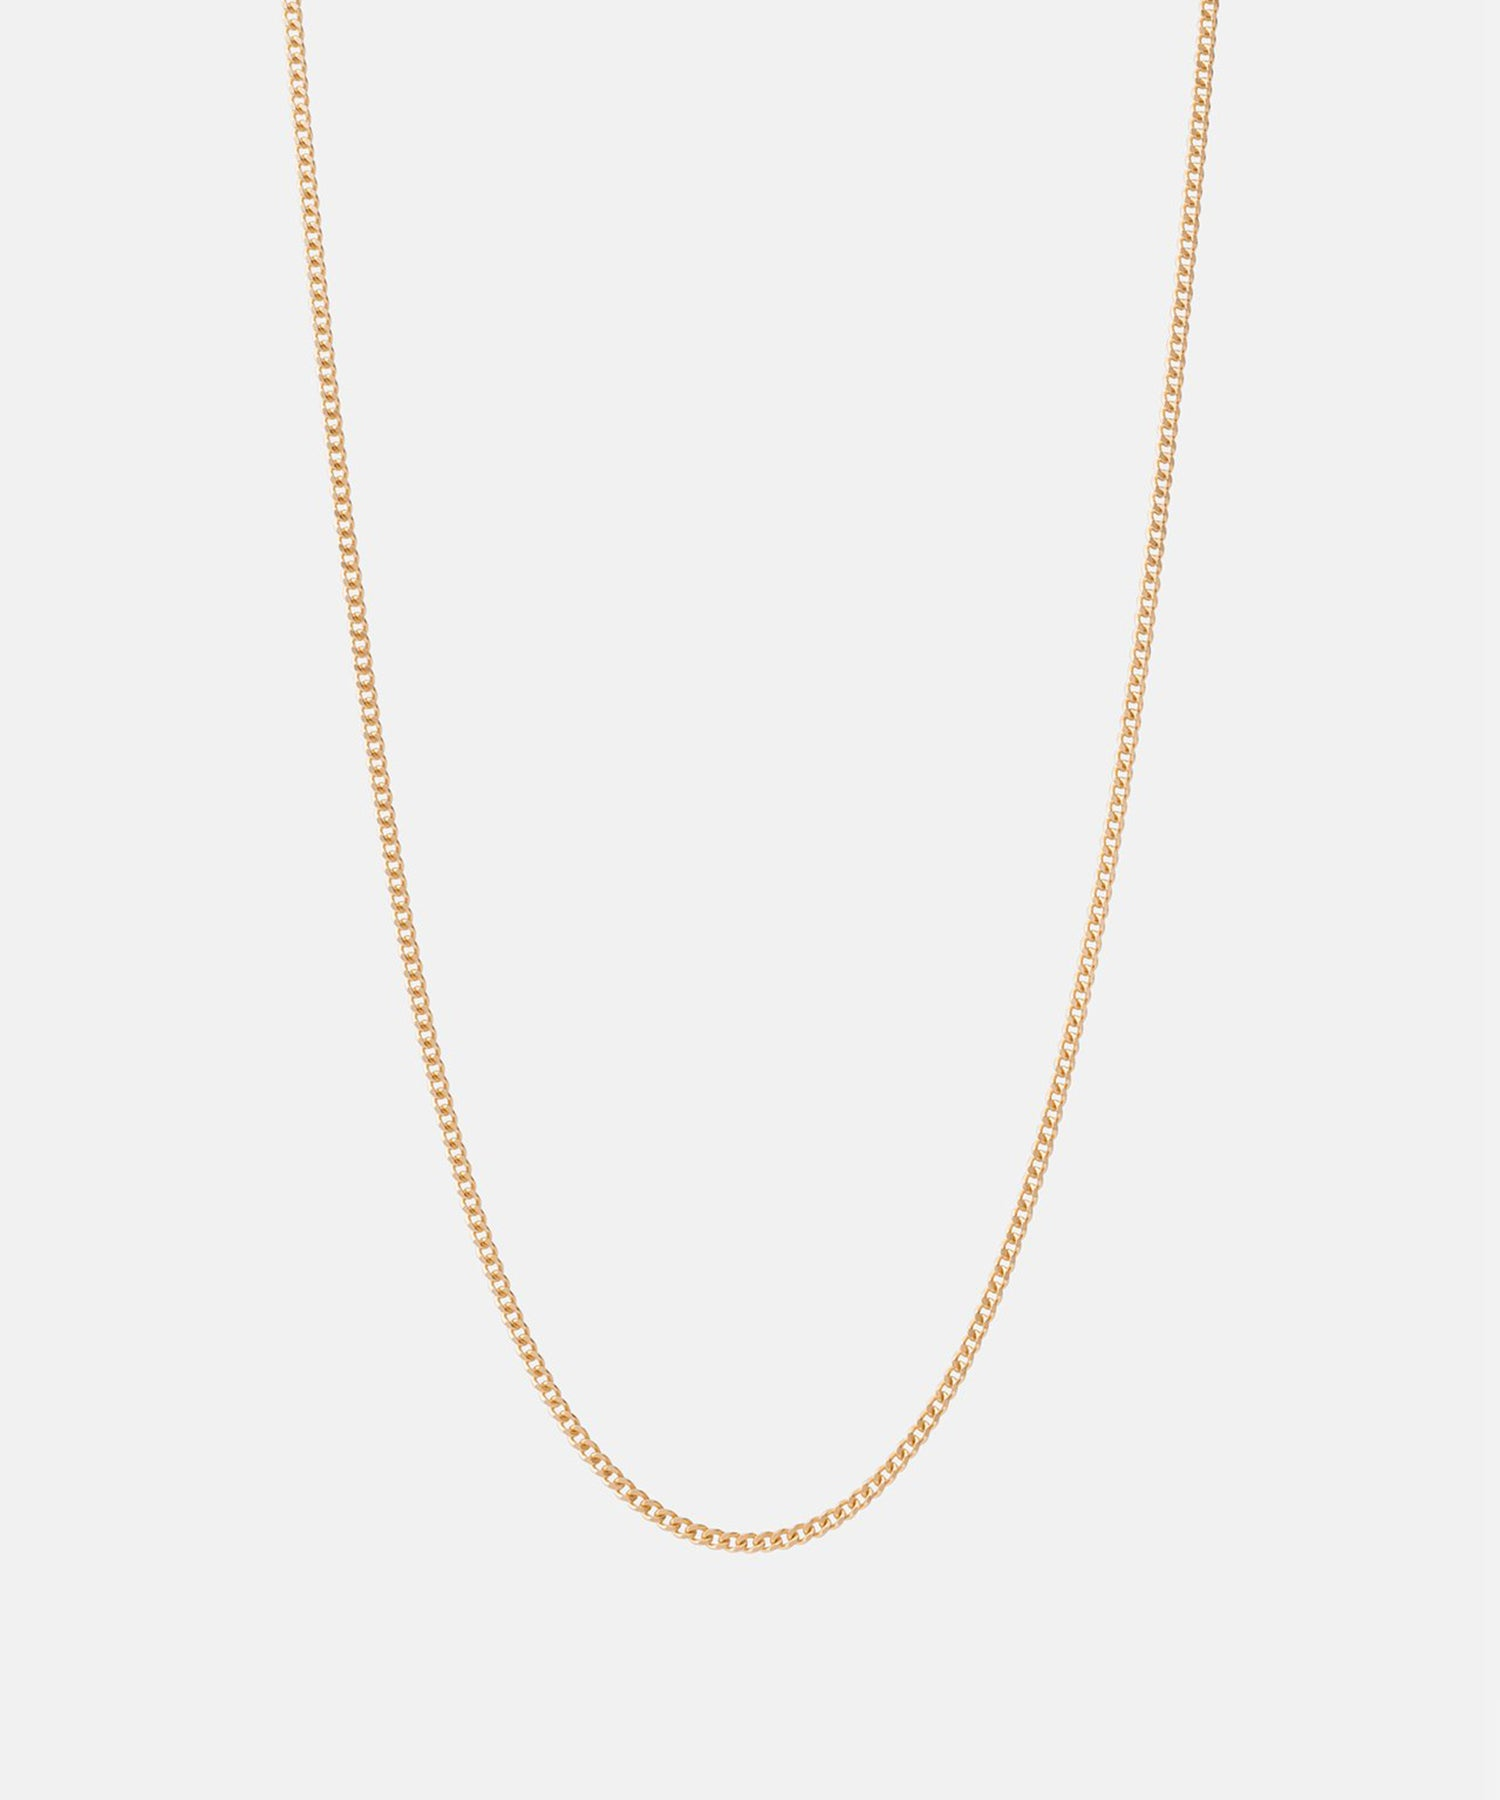 Miansai 2mm Chain Necklace in Gold Vermeil